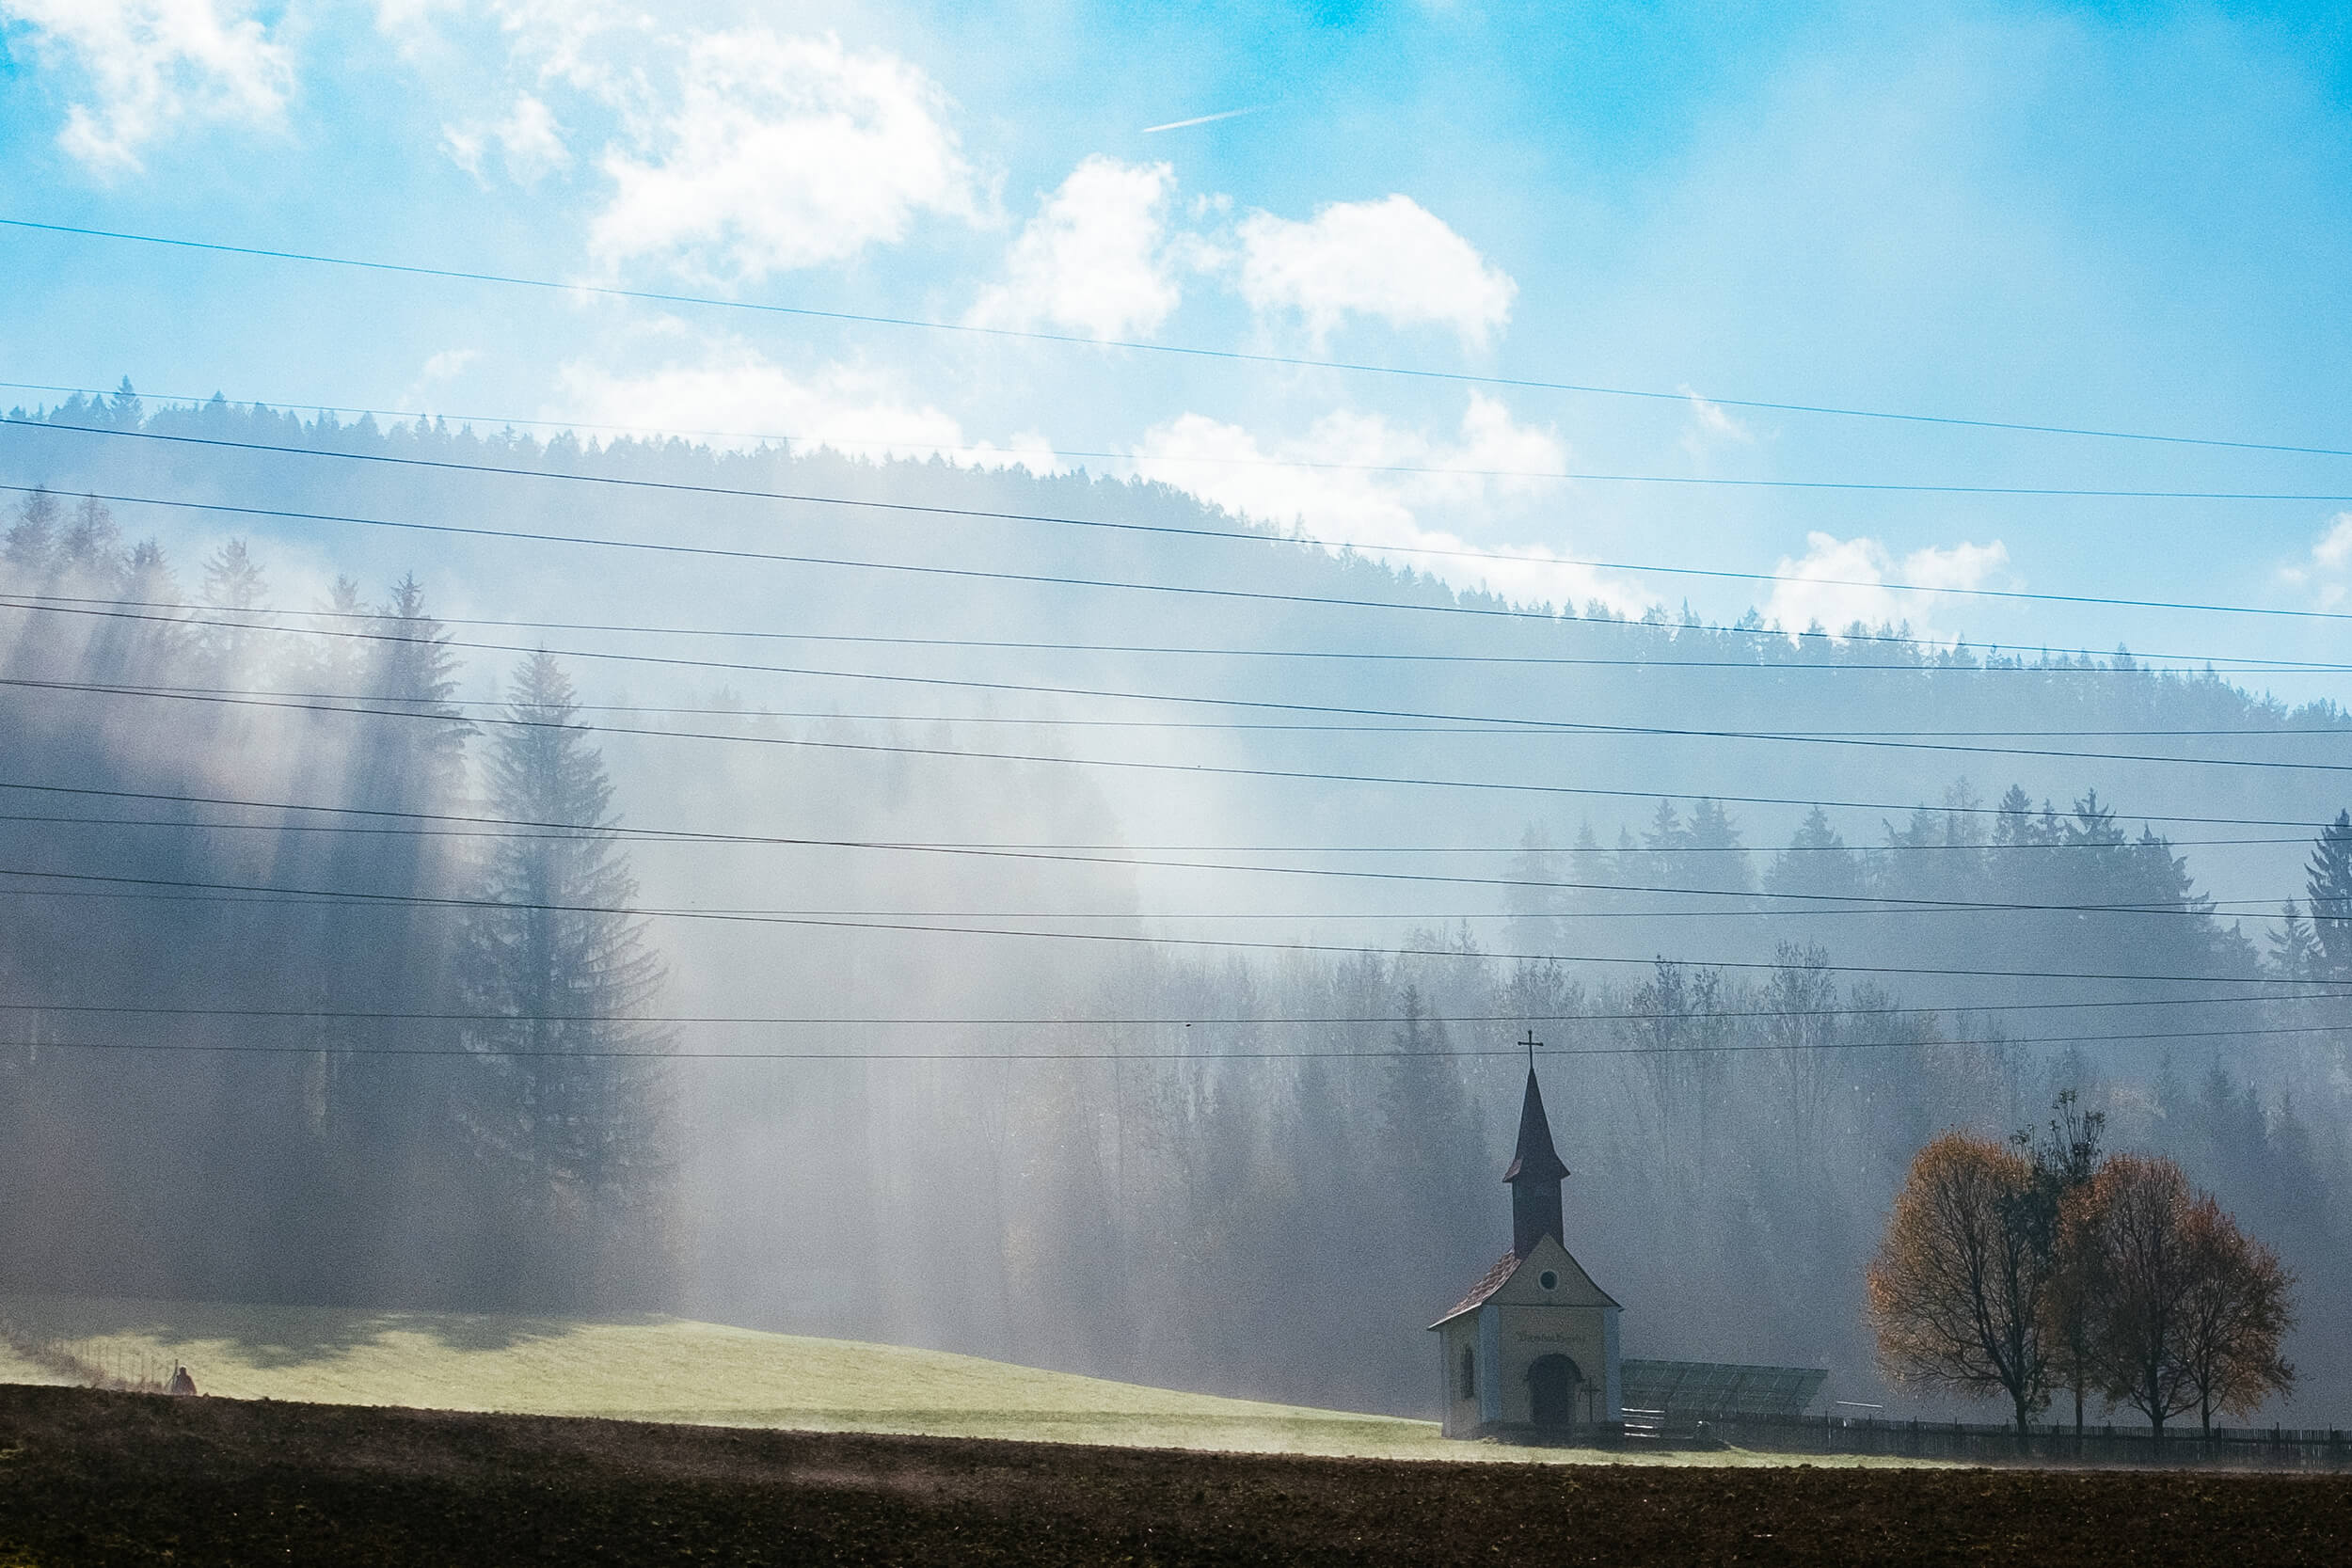 Small church lost in the morning fog on the roads of Carinthia